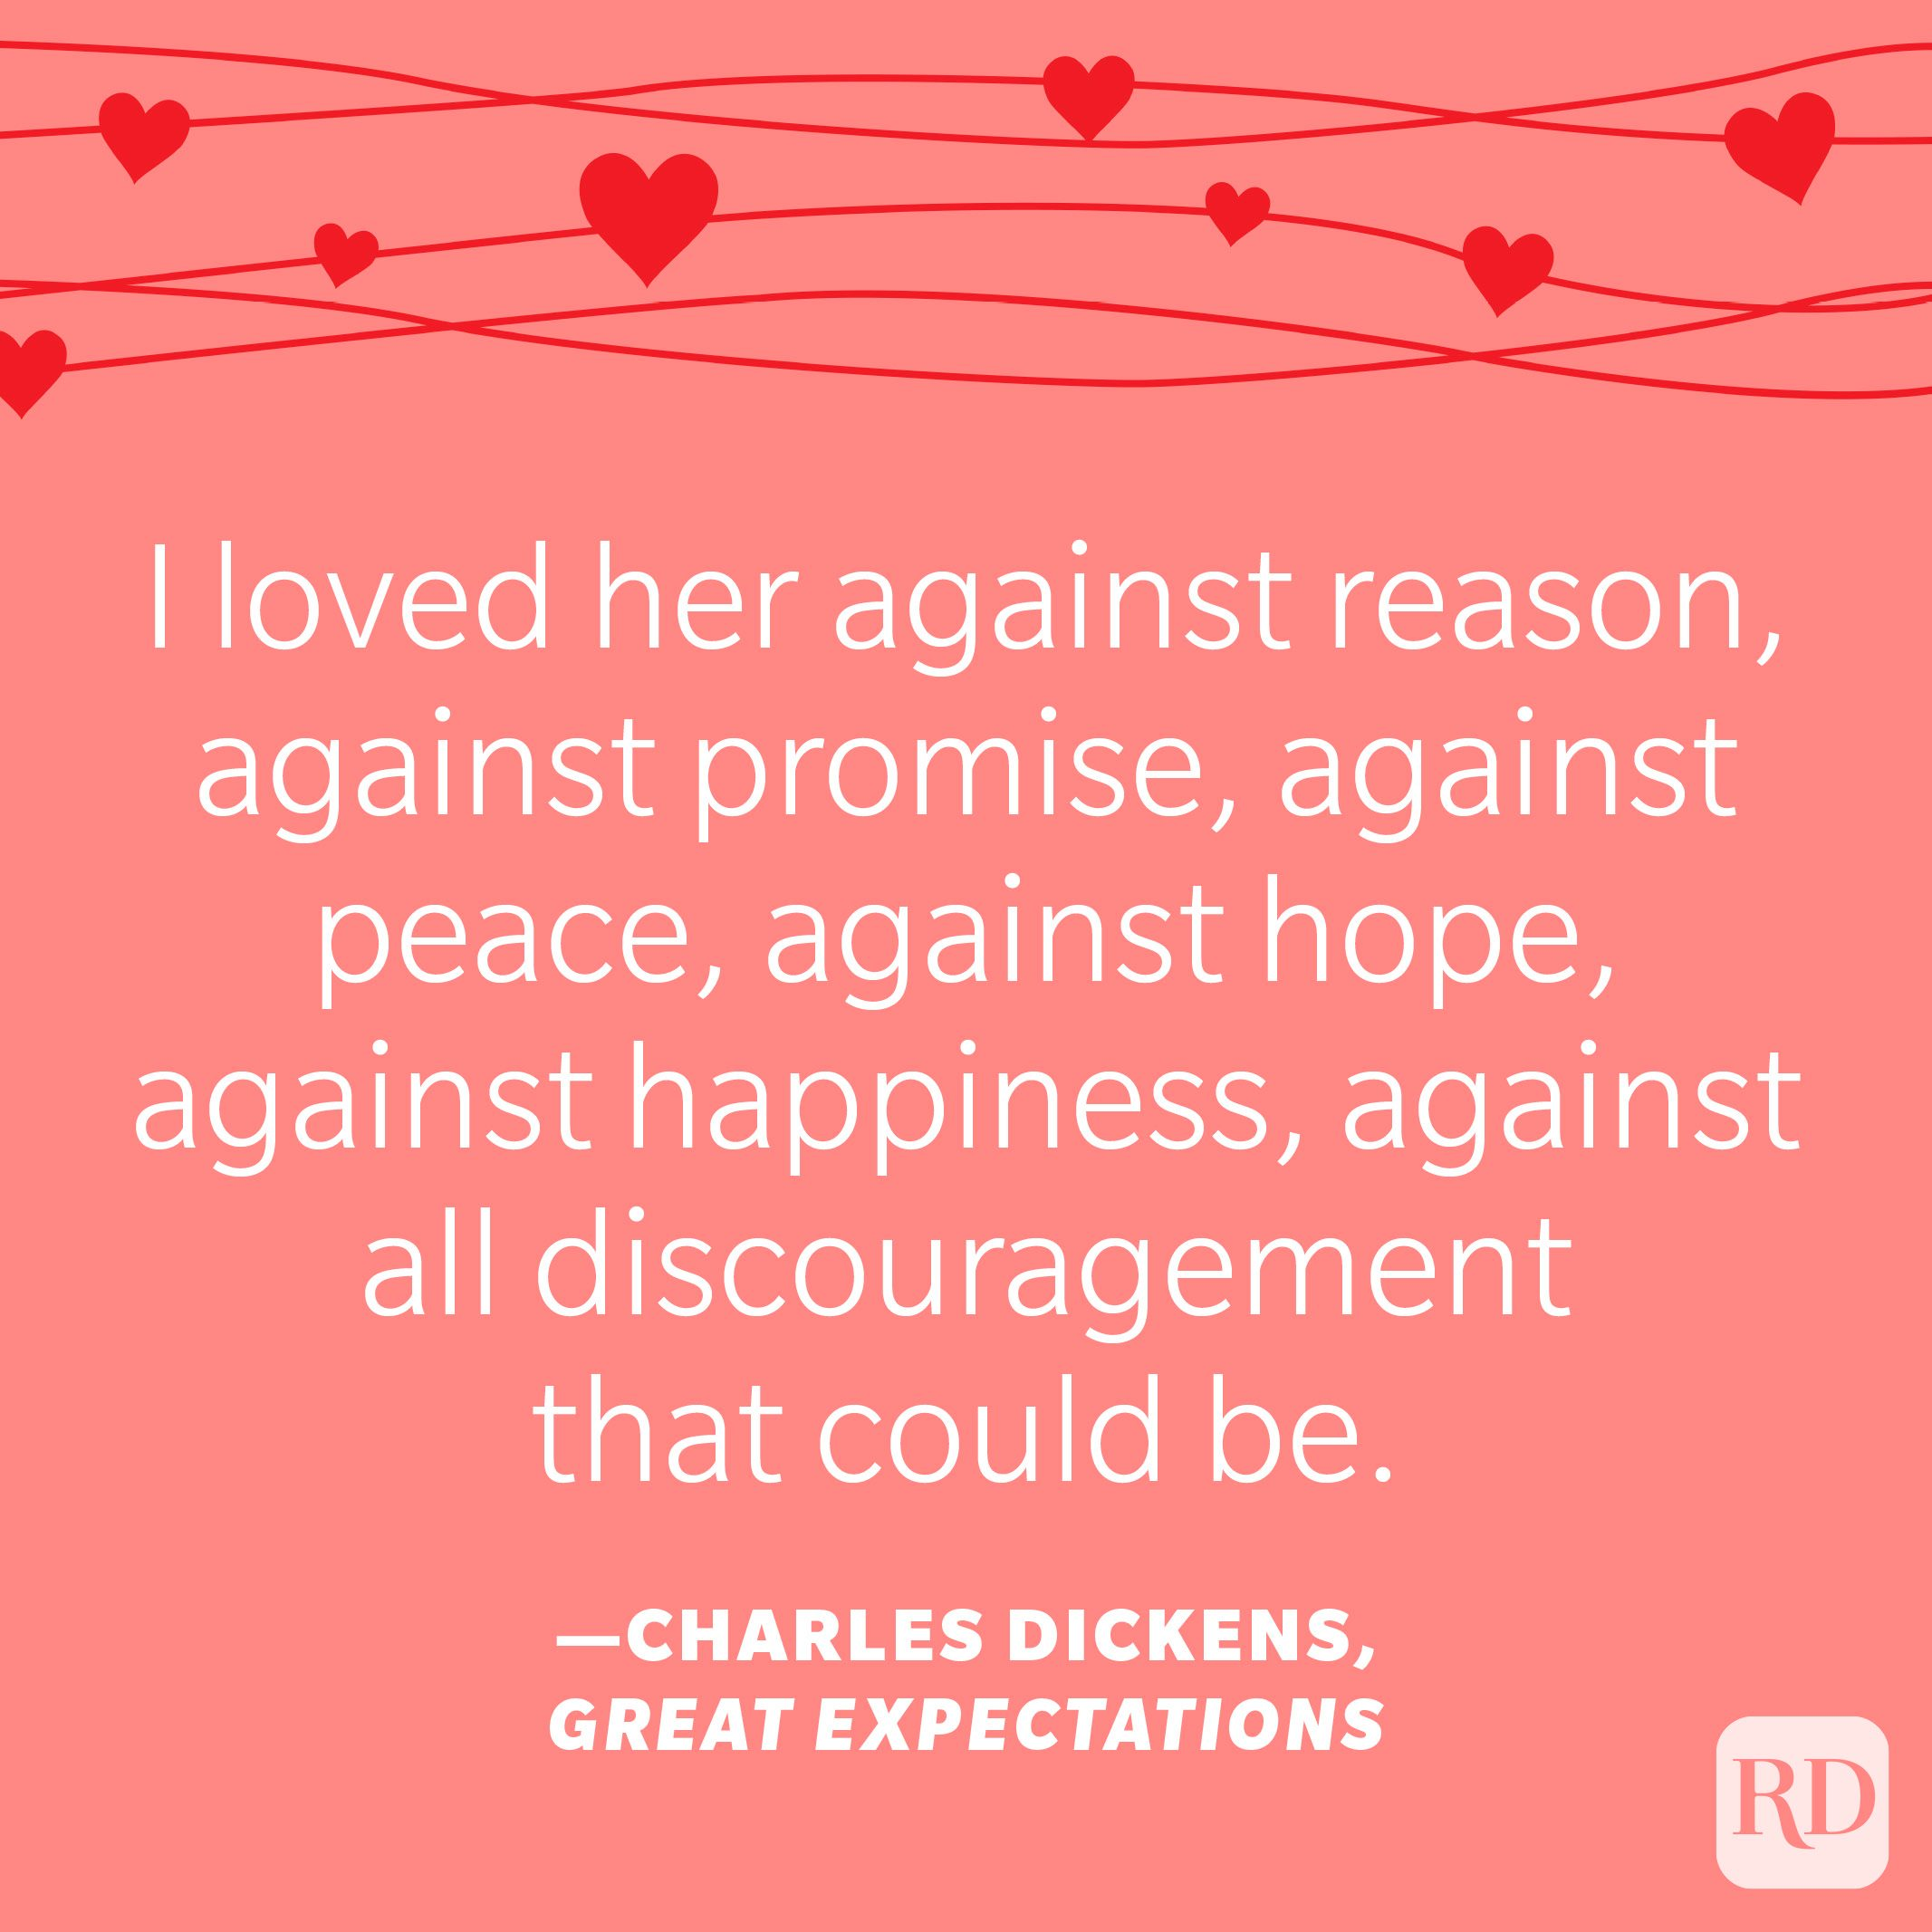 """""""I loved her against reason, against promise, against peace, against hope, against happiness, against all discouragement that could be."""" —Charles Dickens, Great Expectations"""